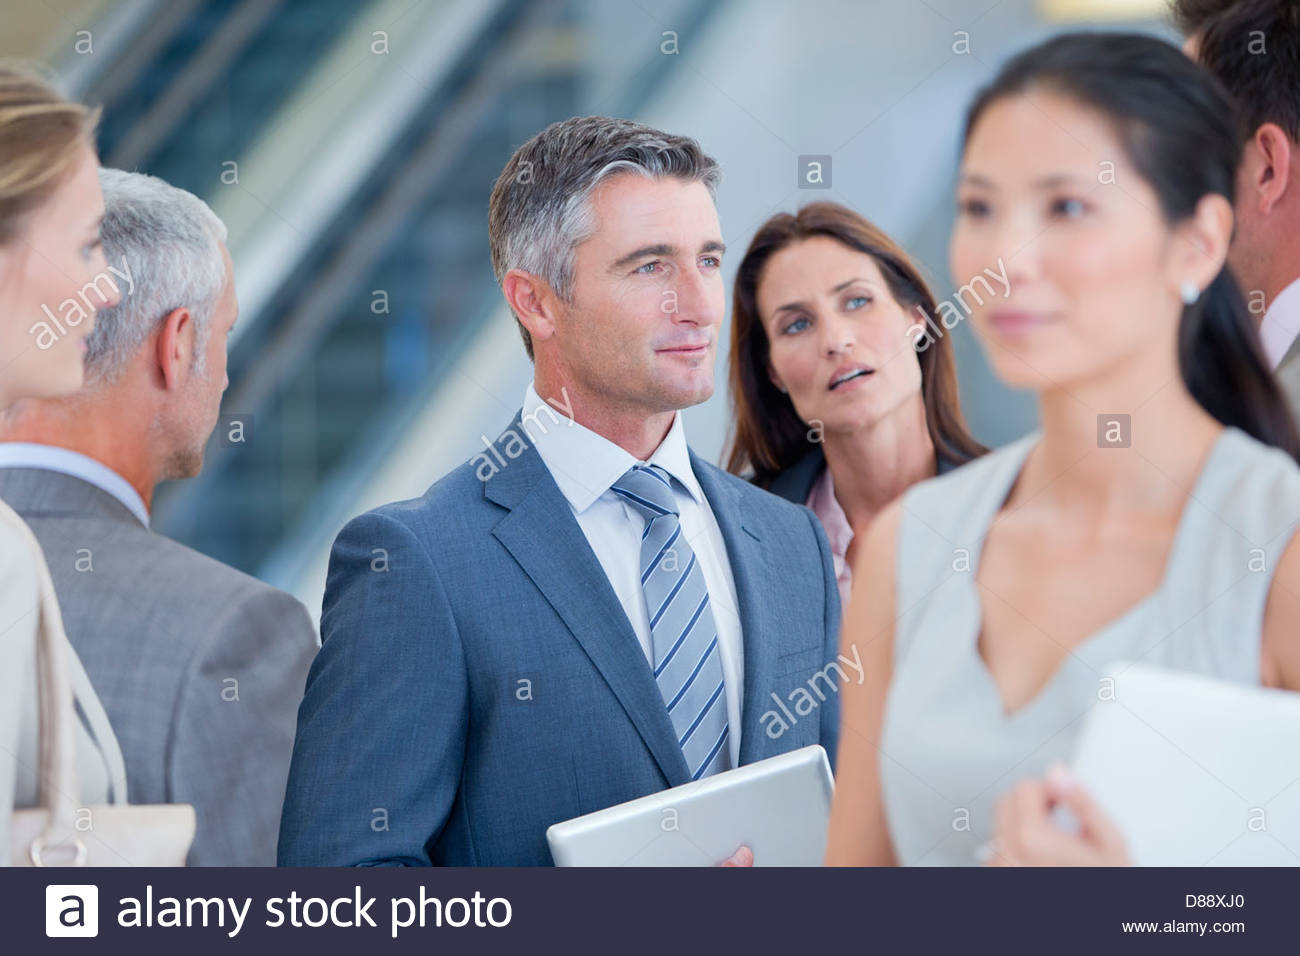 Serious businessman listening to co-worker - Stock Image